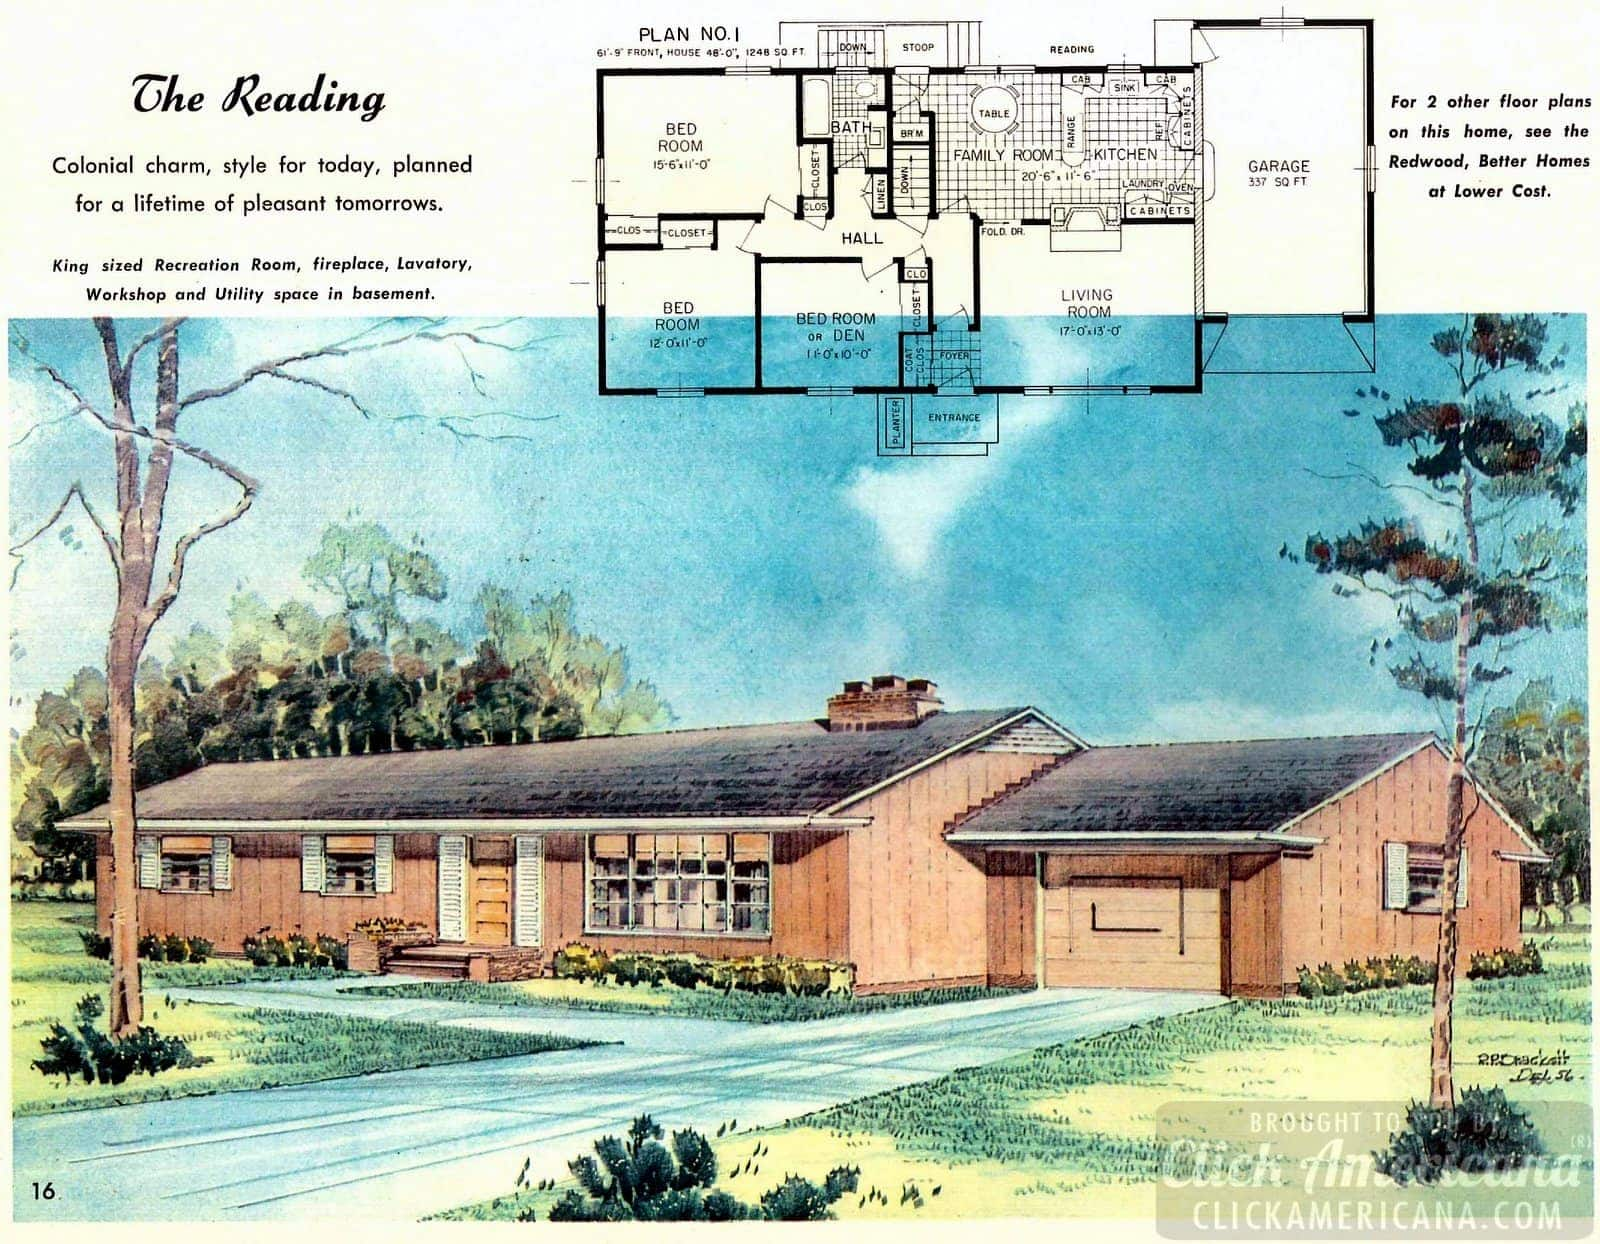 The Reading house: Home design plans from 1958